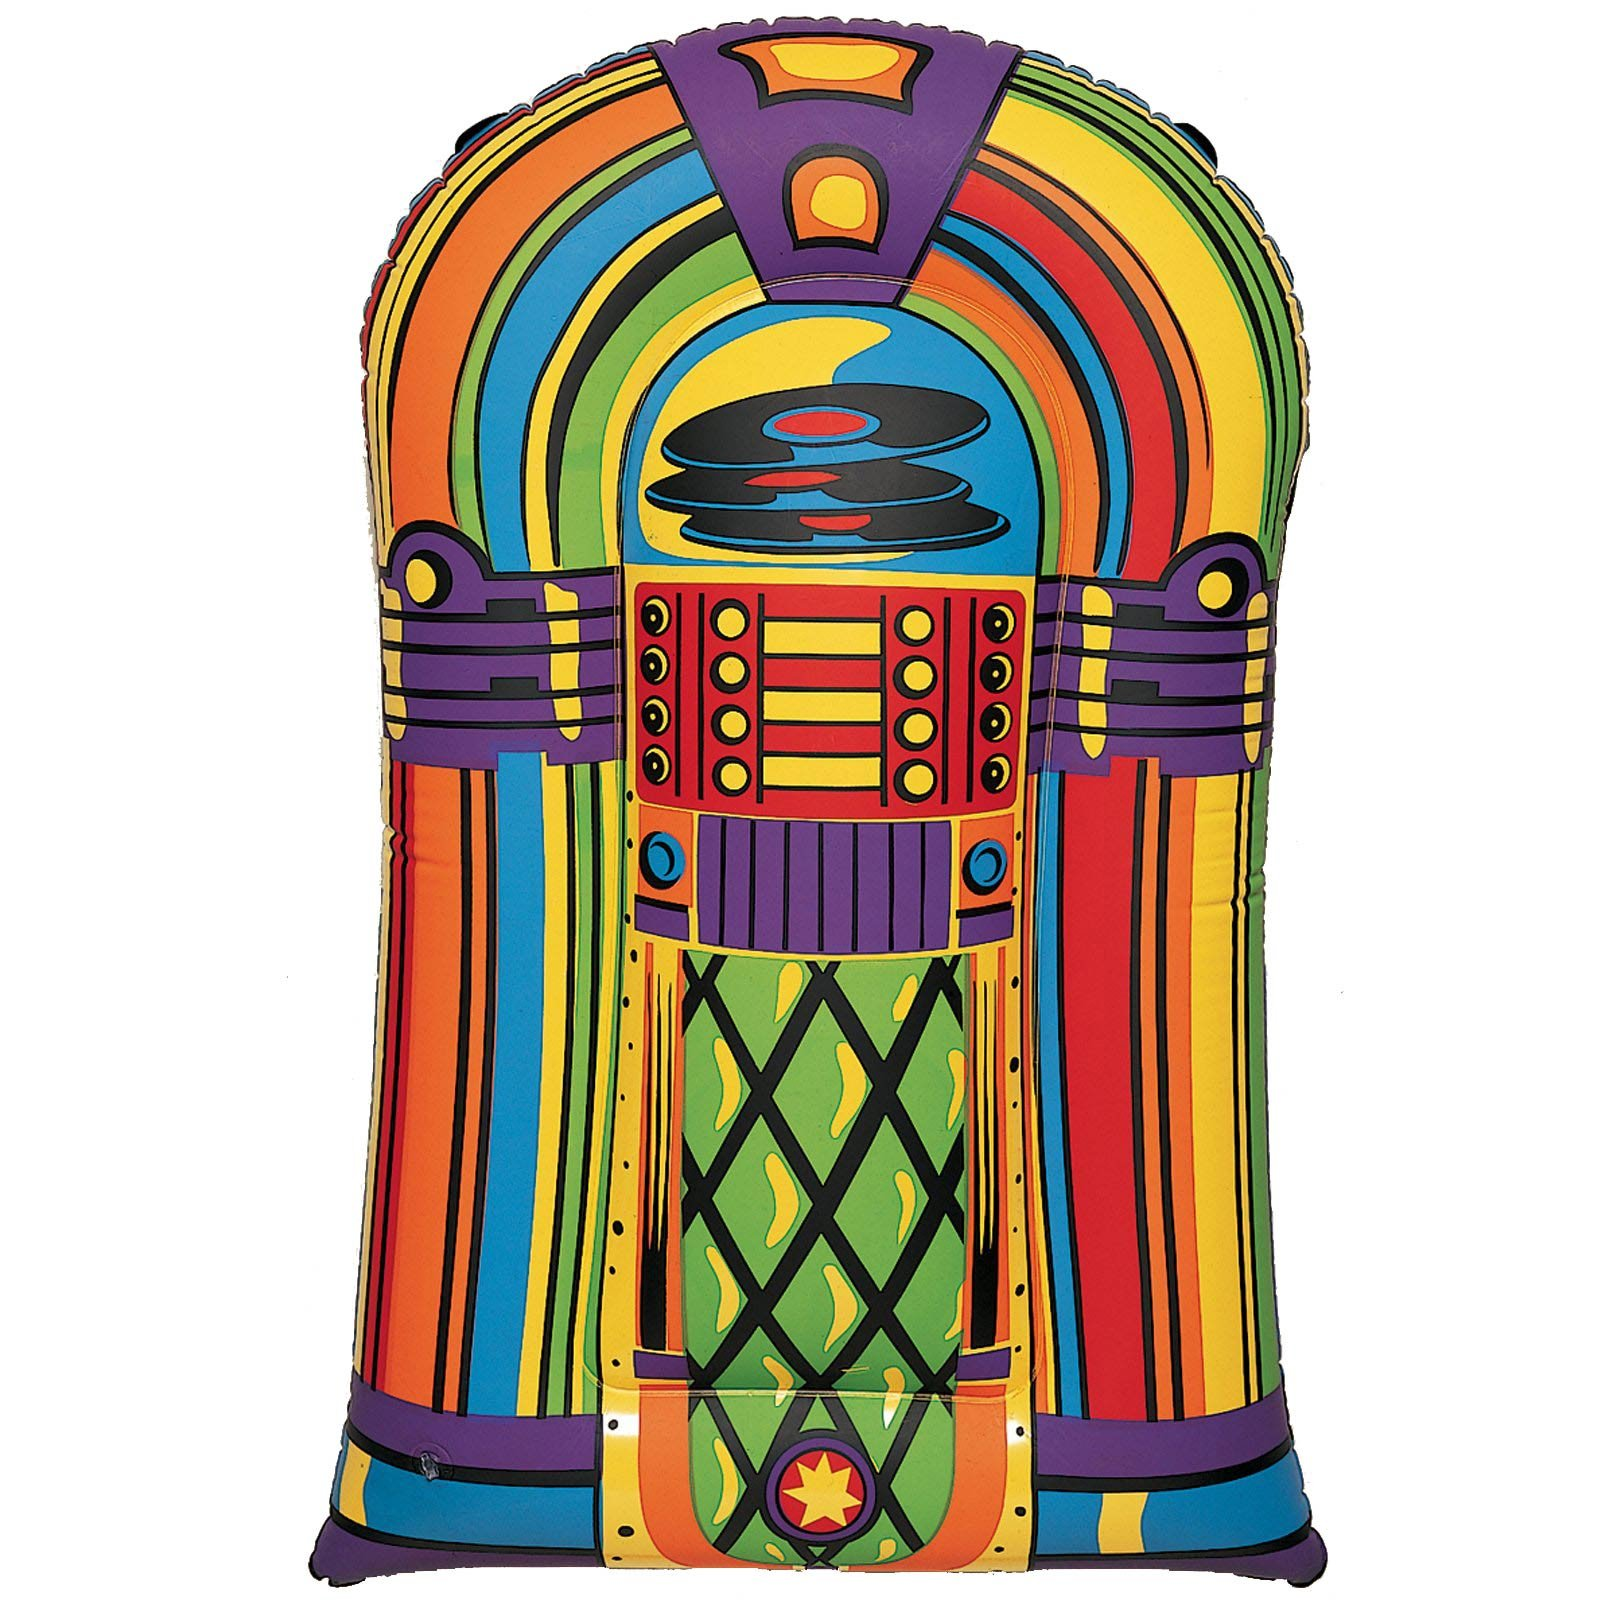 $13.46 Sock Hop Inflatable Jukebox at CostumesHut.